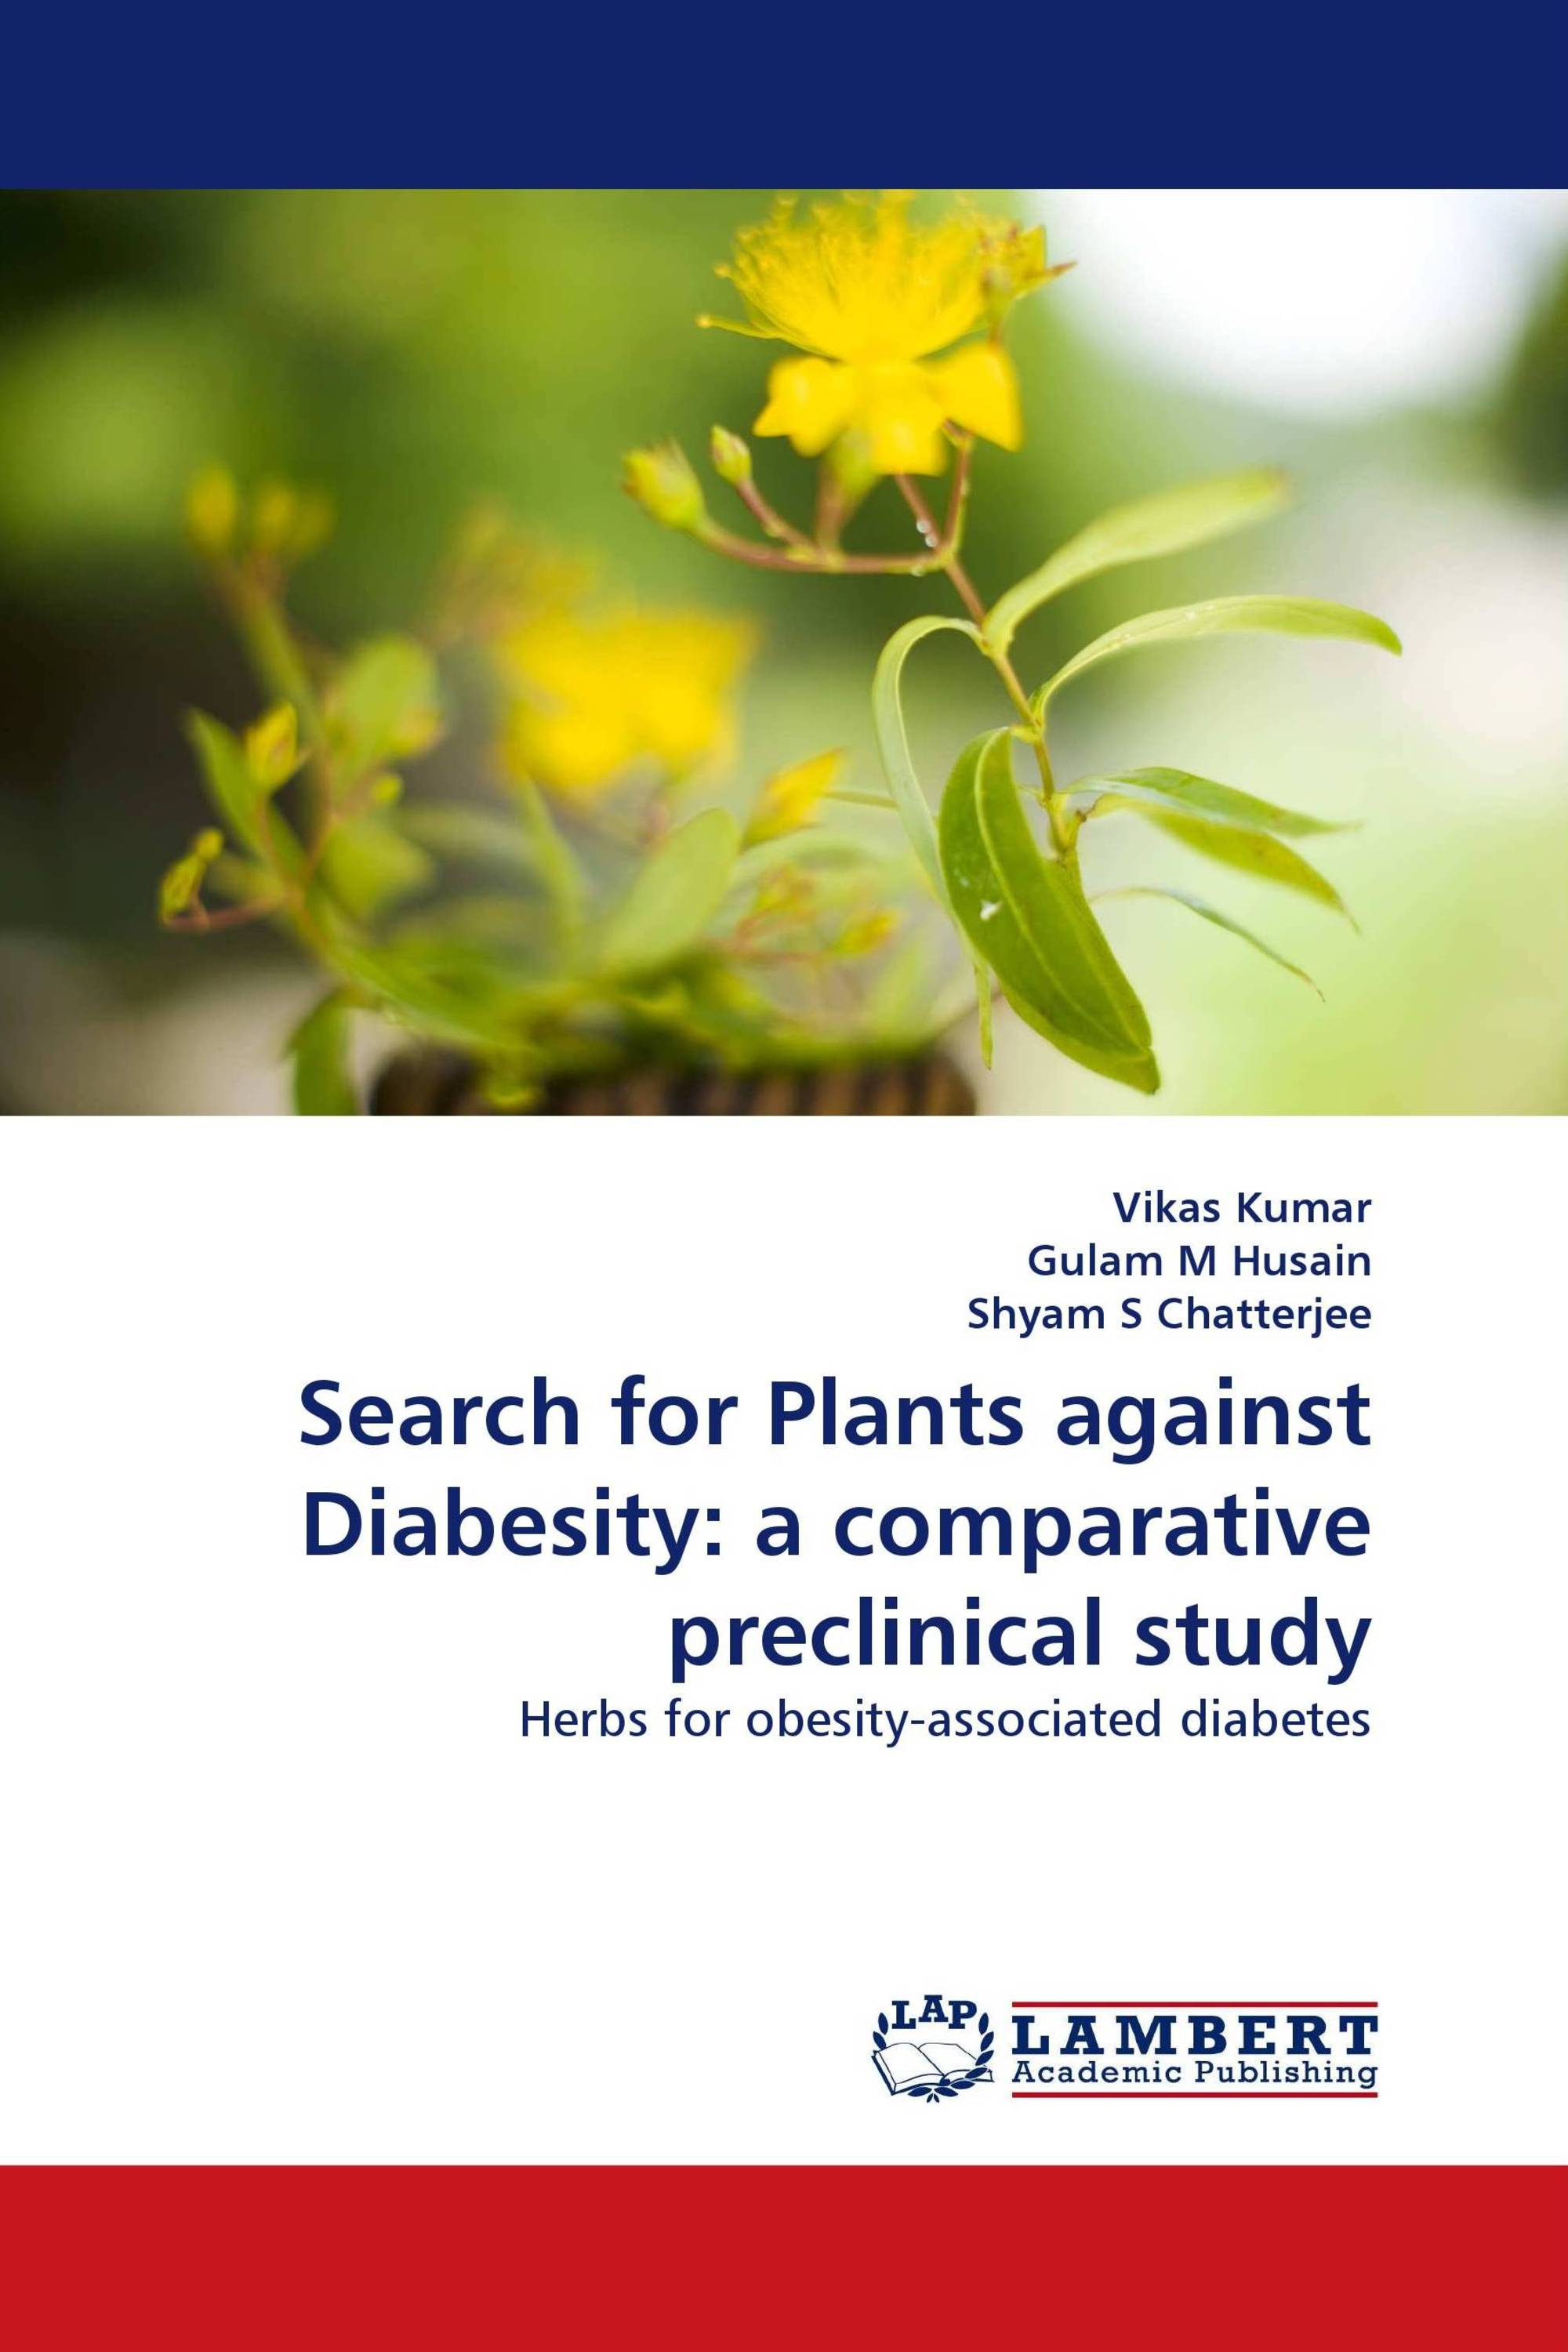 Search for Plants against Diabesity: a comparative preclinical study